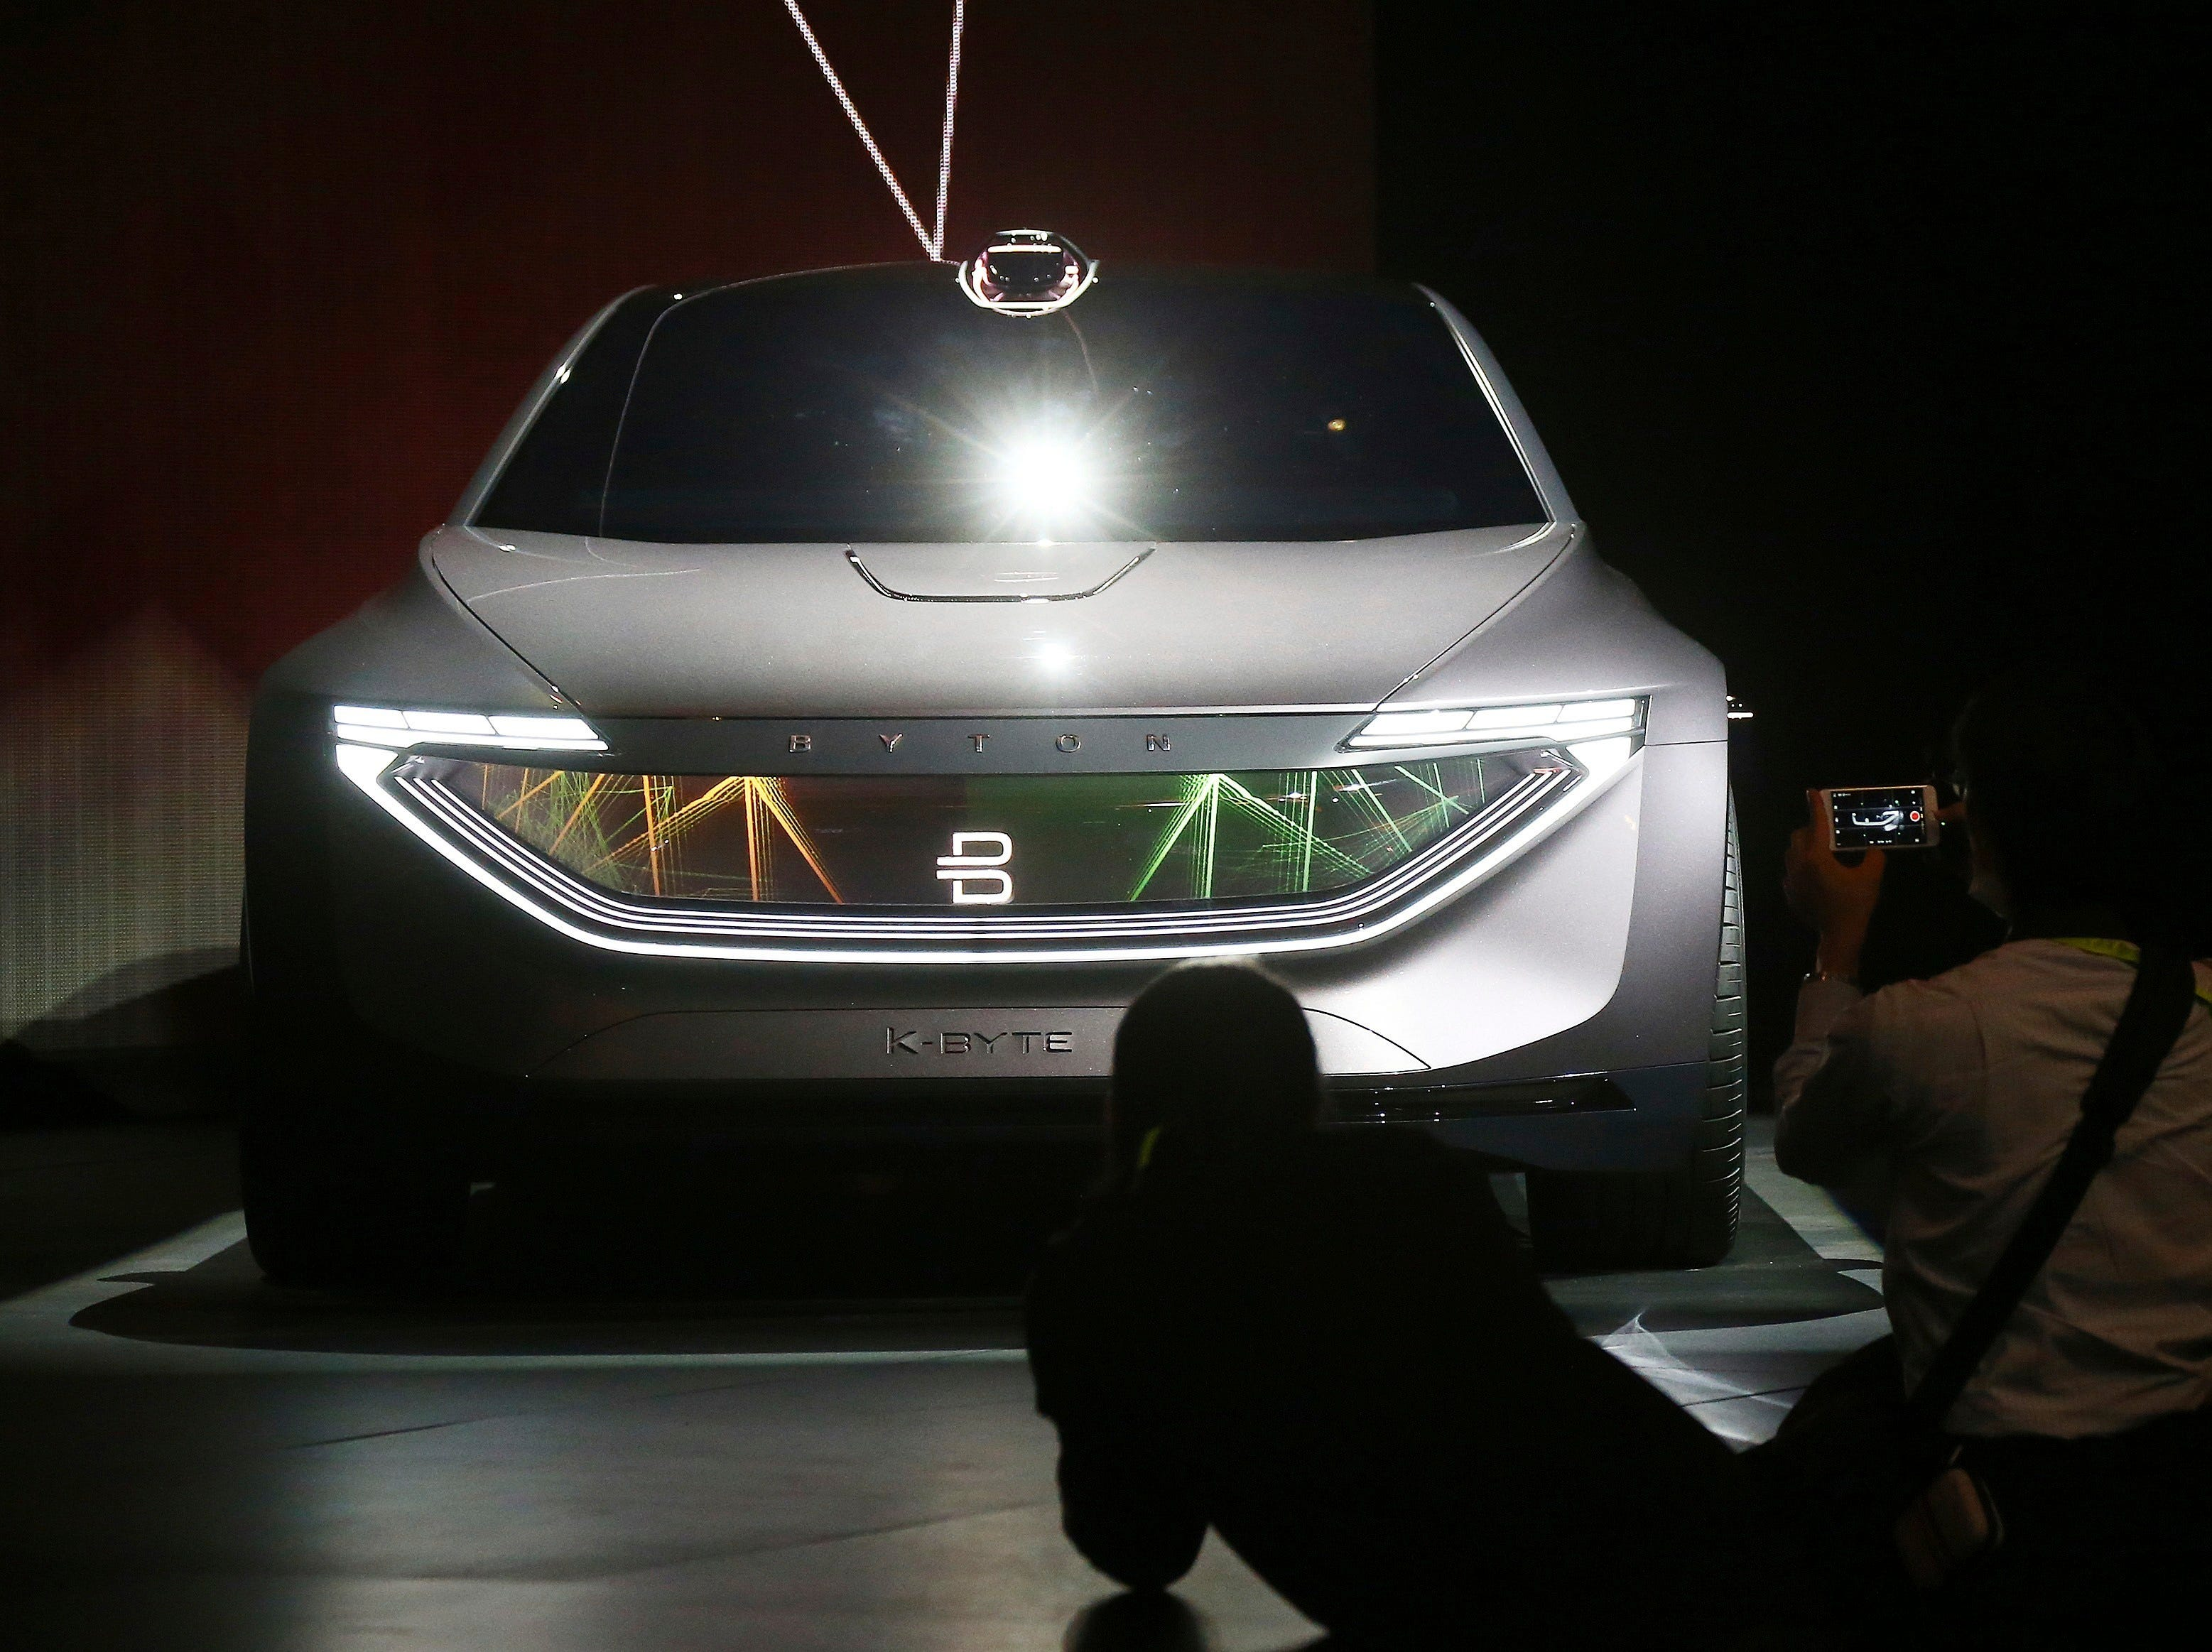 Byton unveils the K-Byte Concept car during a news conference before CES International on Sunday, Jan. 6, 2019, in Las Vegas.